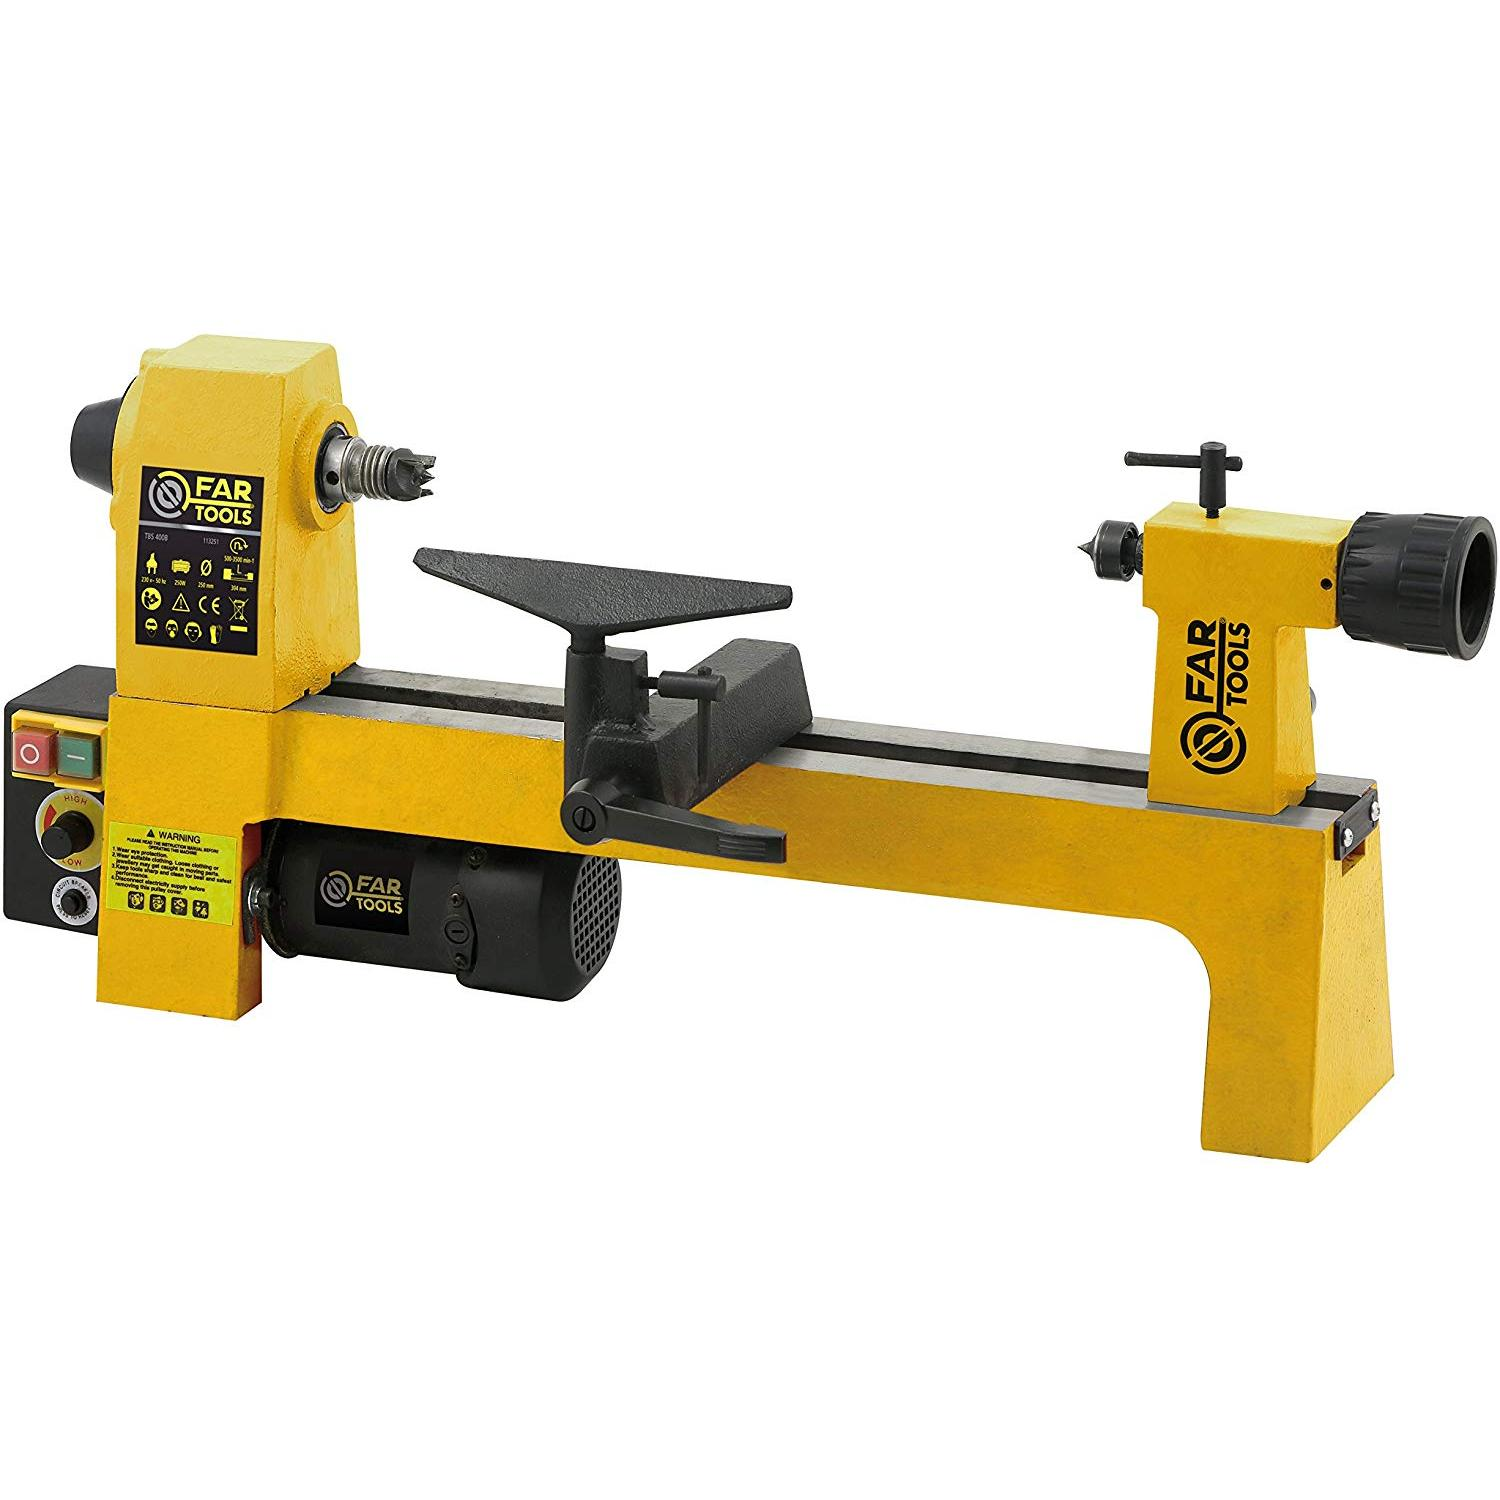 TBS 400 Wood Lathe